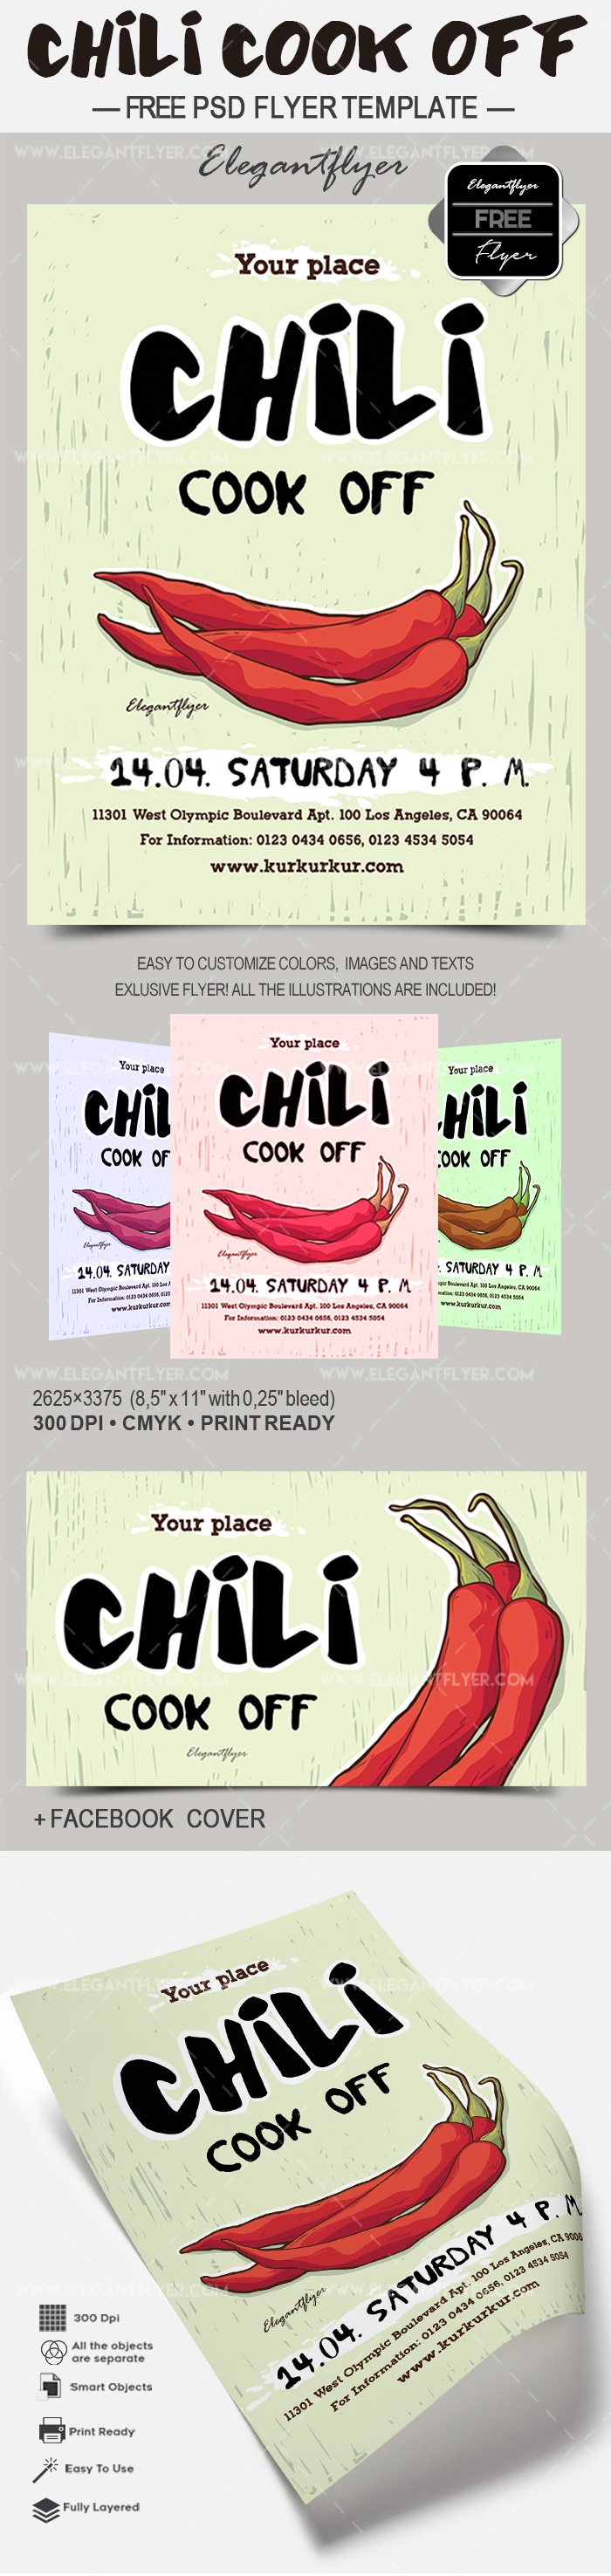 Chili Cook Off – Free Flyer PSD Template